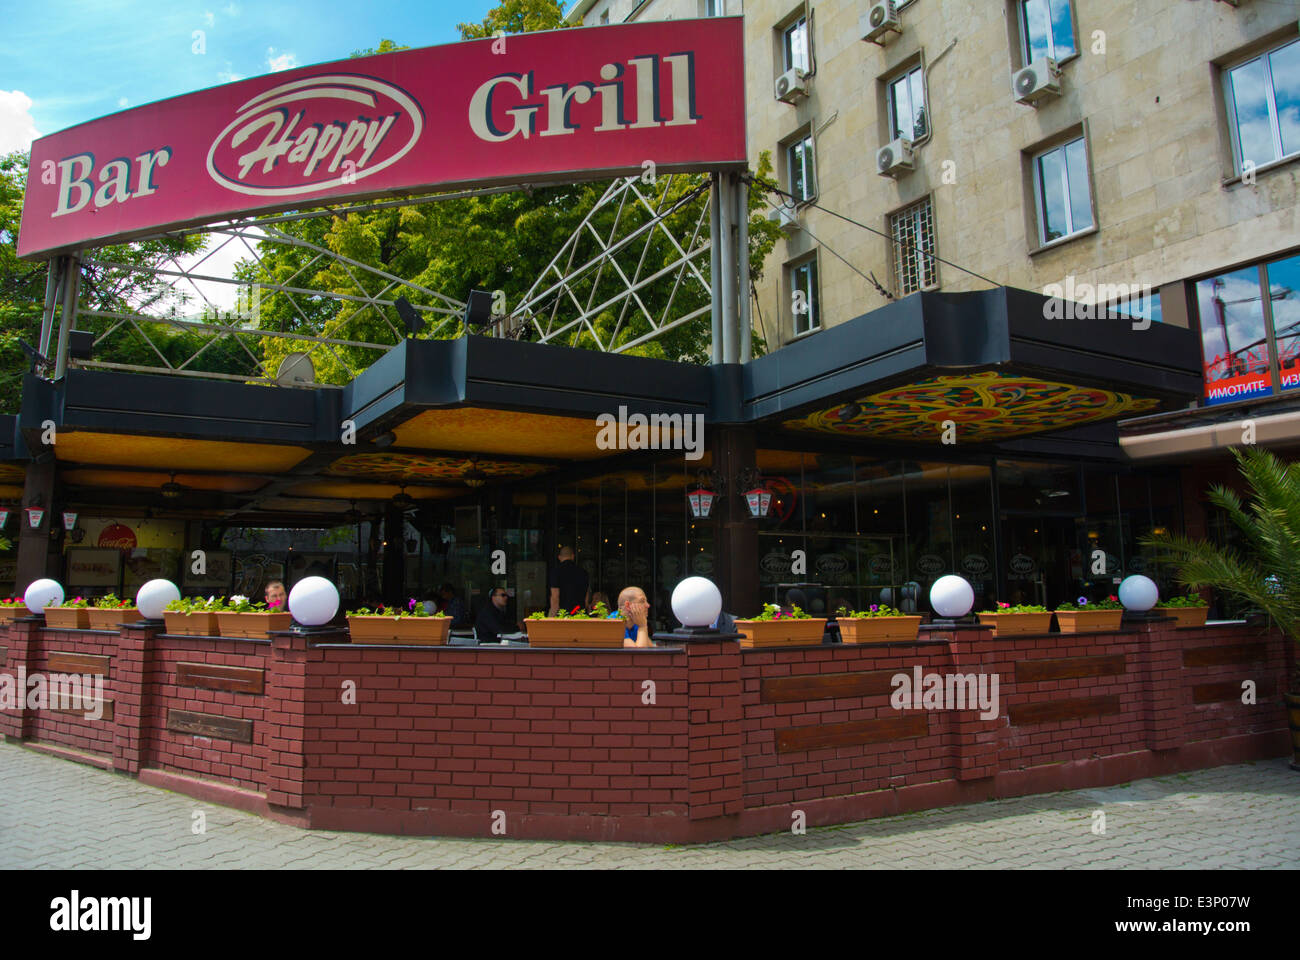 Happy Bar And Grill Restaurant In Main Street Central Sofia Stock Photo Alamy